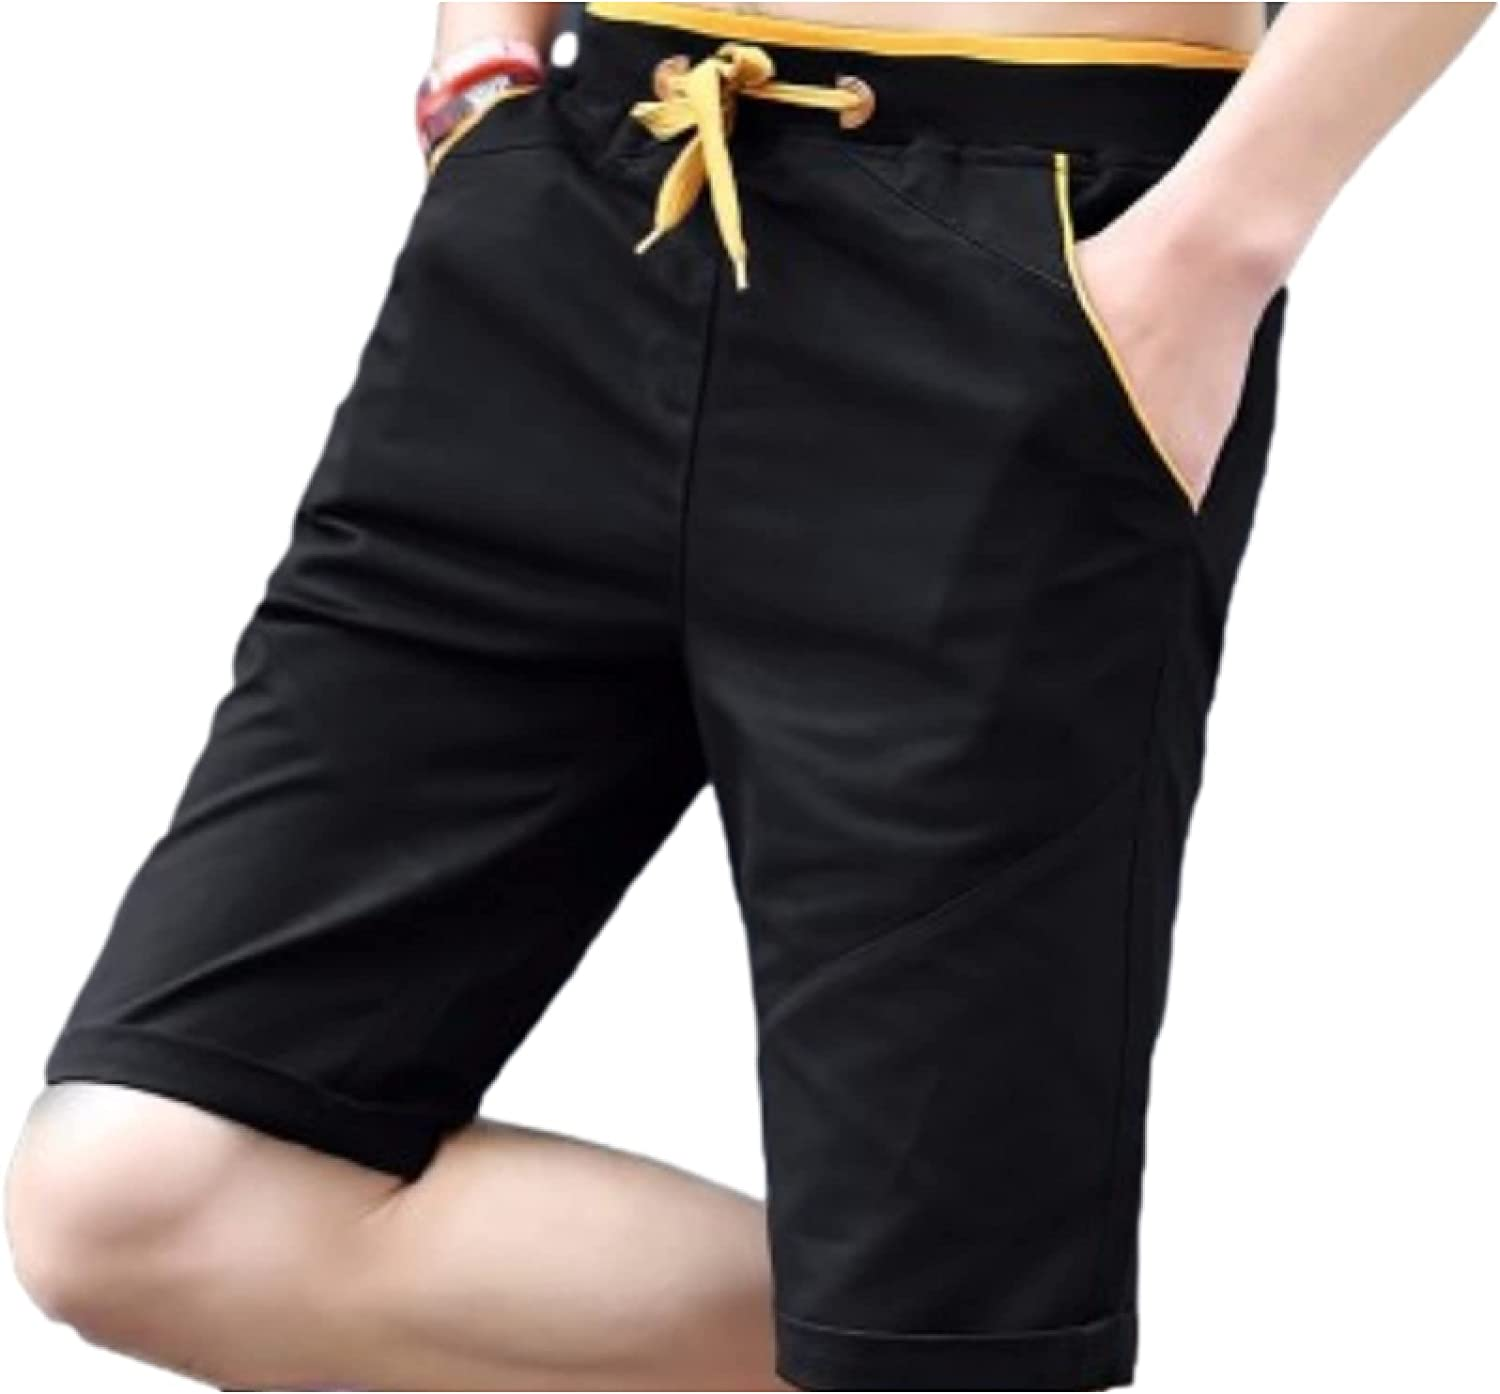 Segindy Fashionable New Shipping Free Men's Loose Fit Shorts Drawst Summer Leisure Comfortable